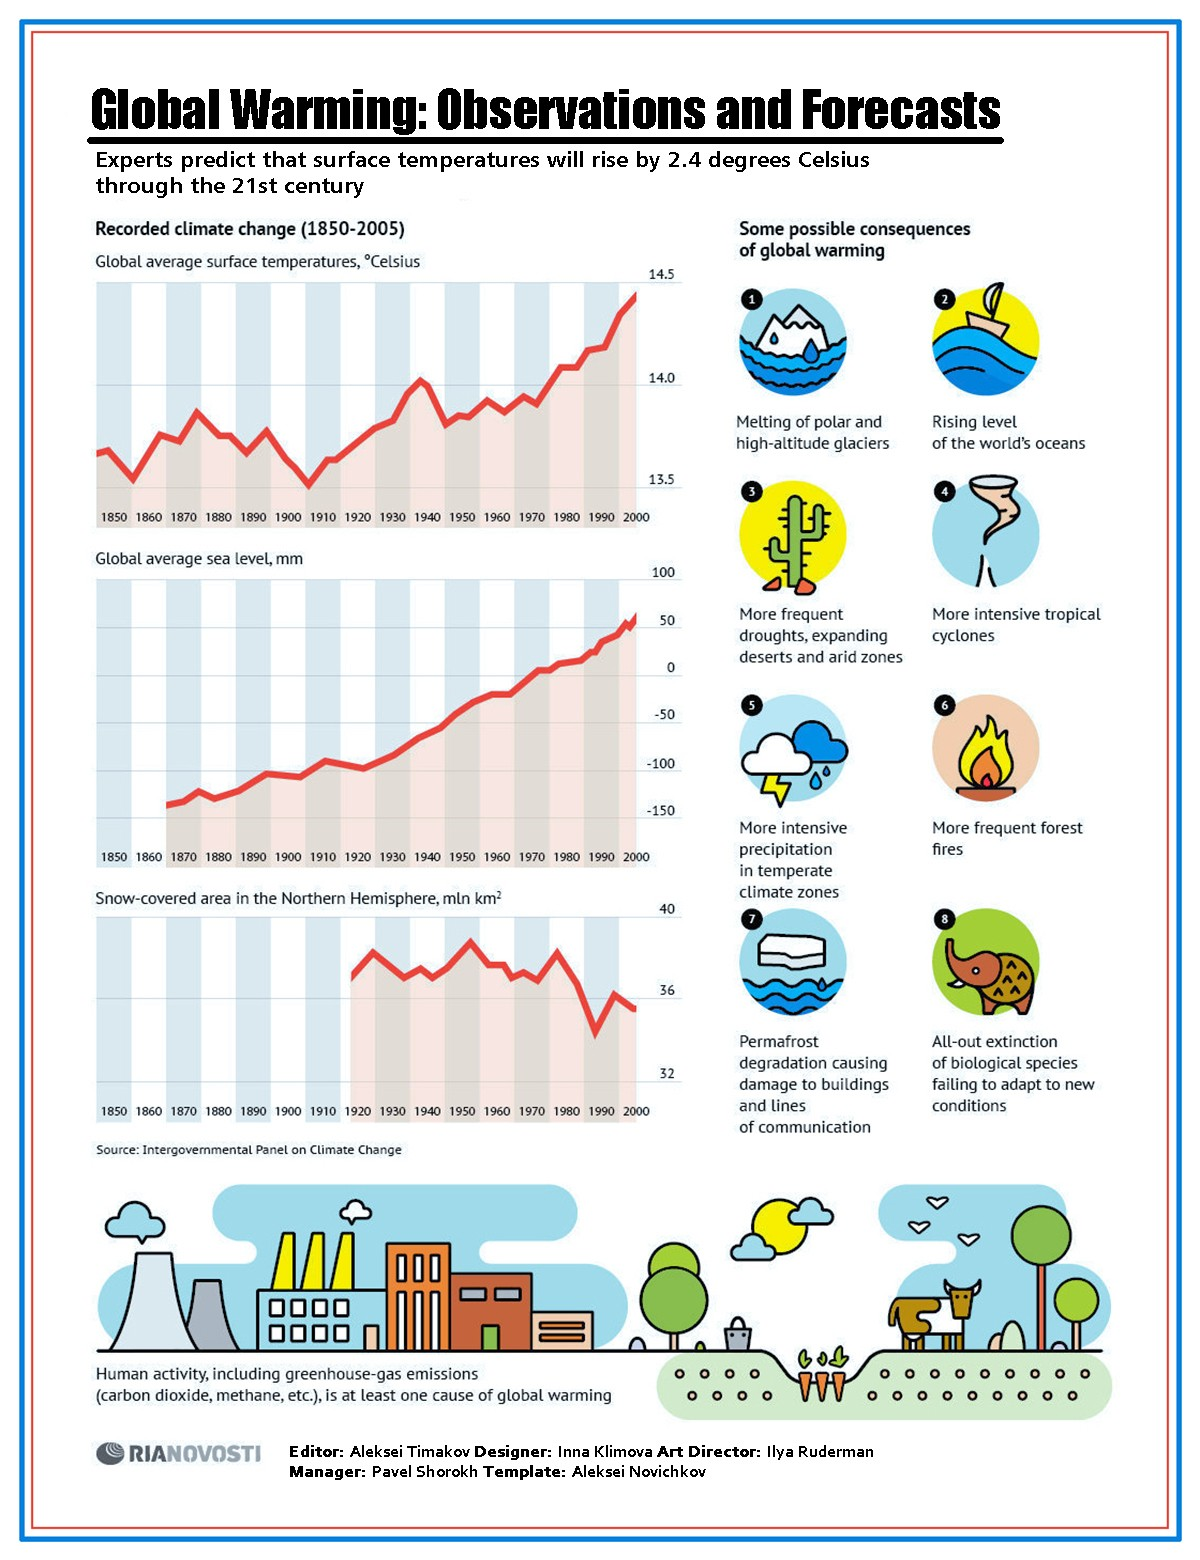 00 RIA-Novosti Infographics. Global Warming. Observations and Forecasts. 2013